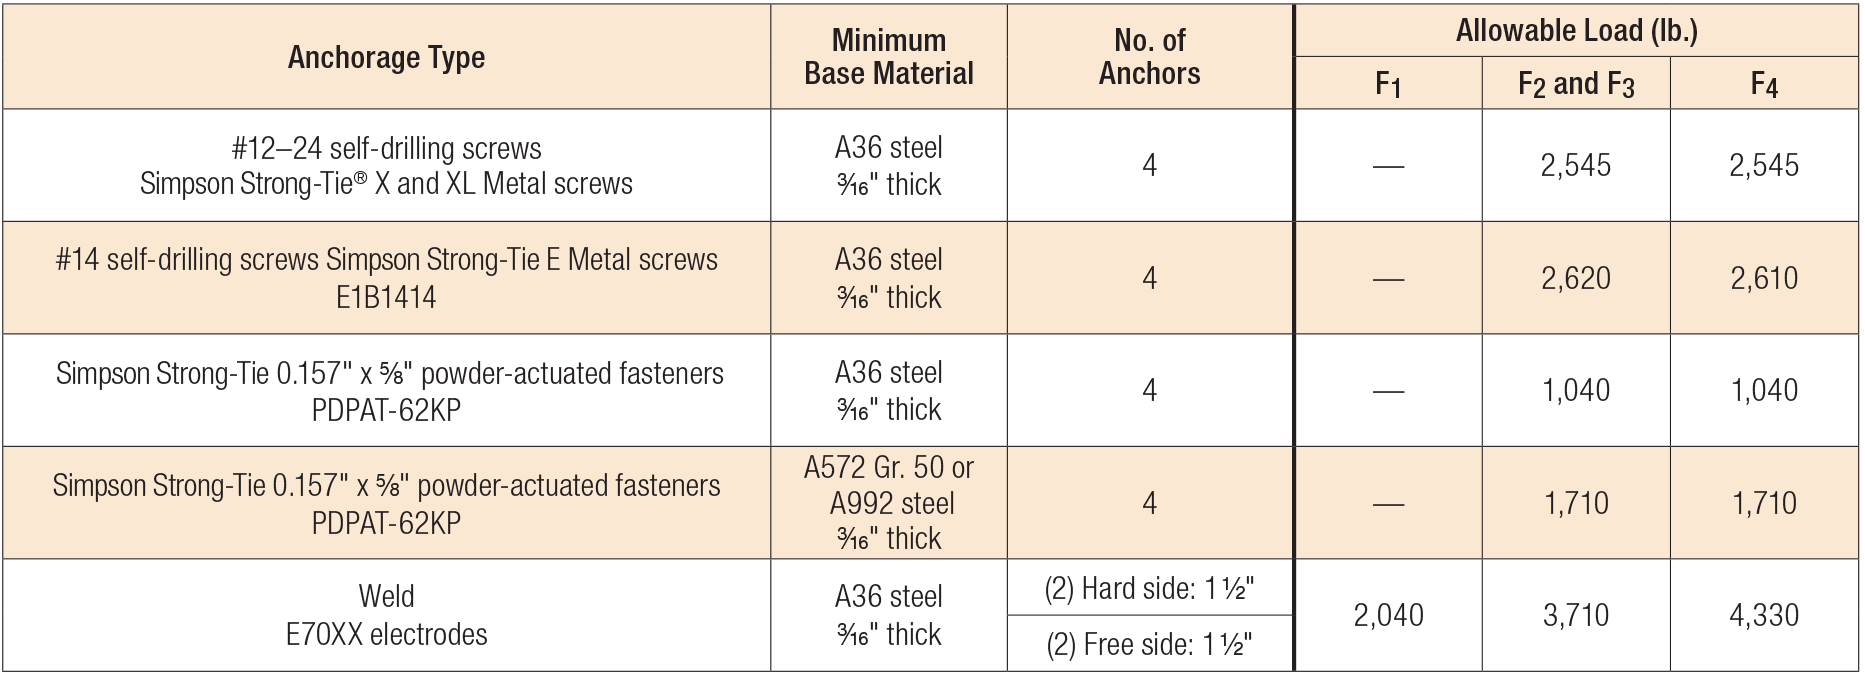 Load Table - FC Allowable Anchorage Loads to Steel